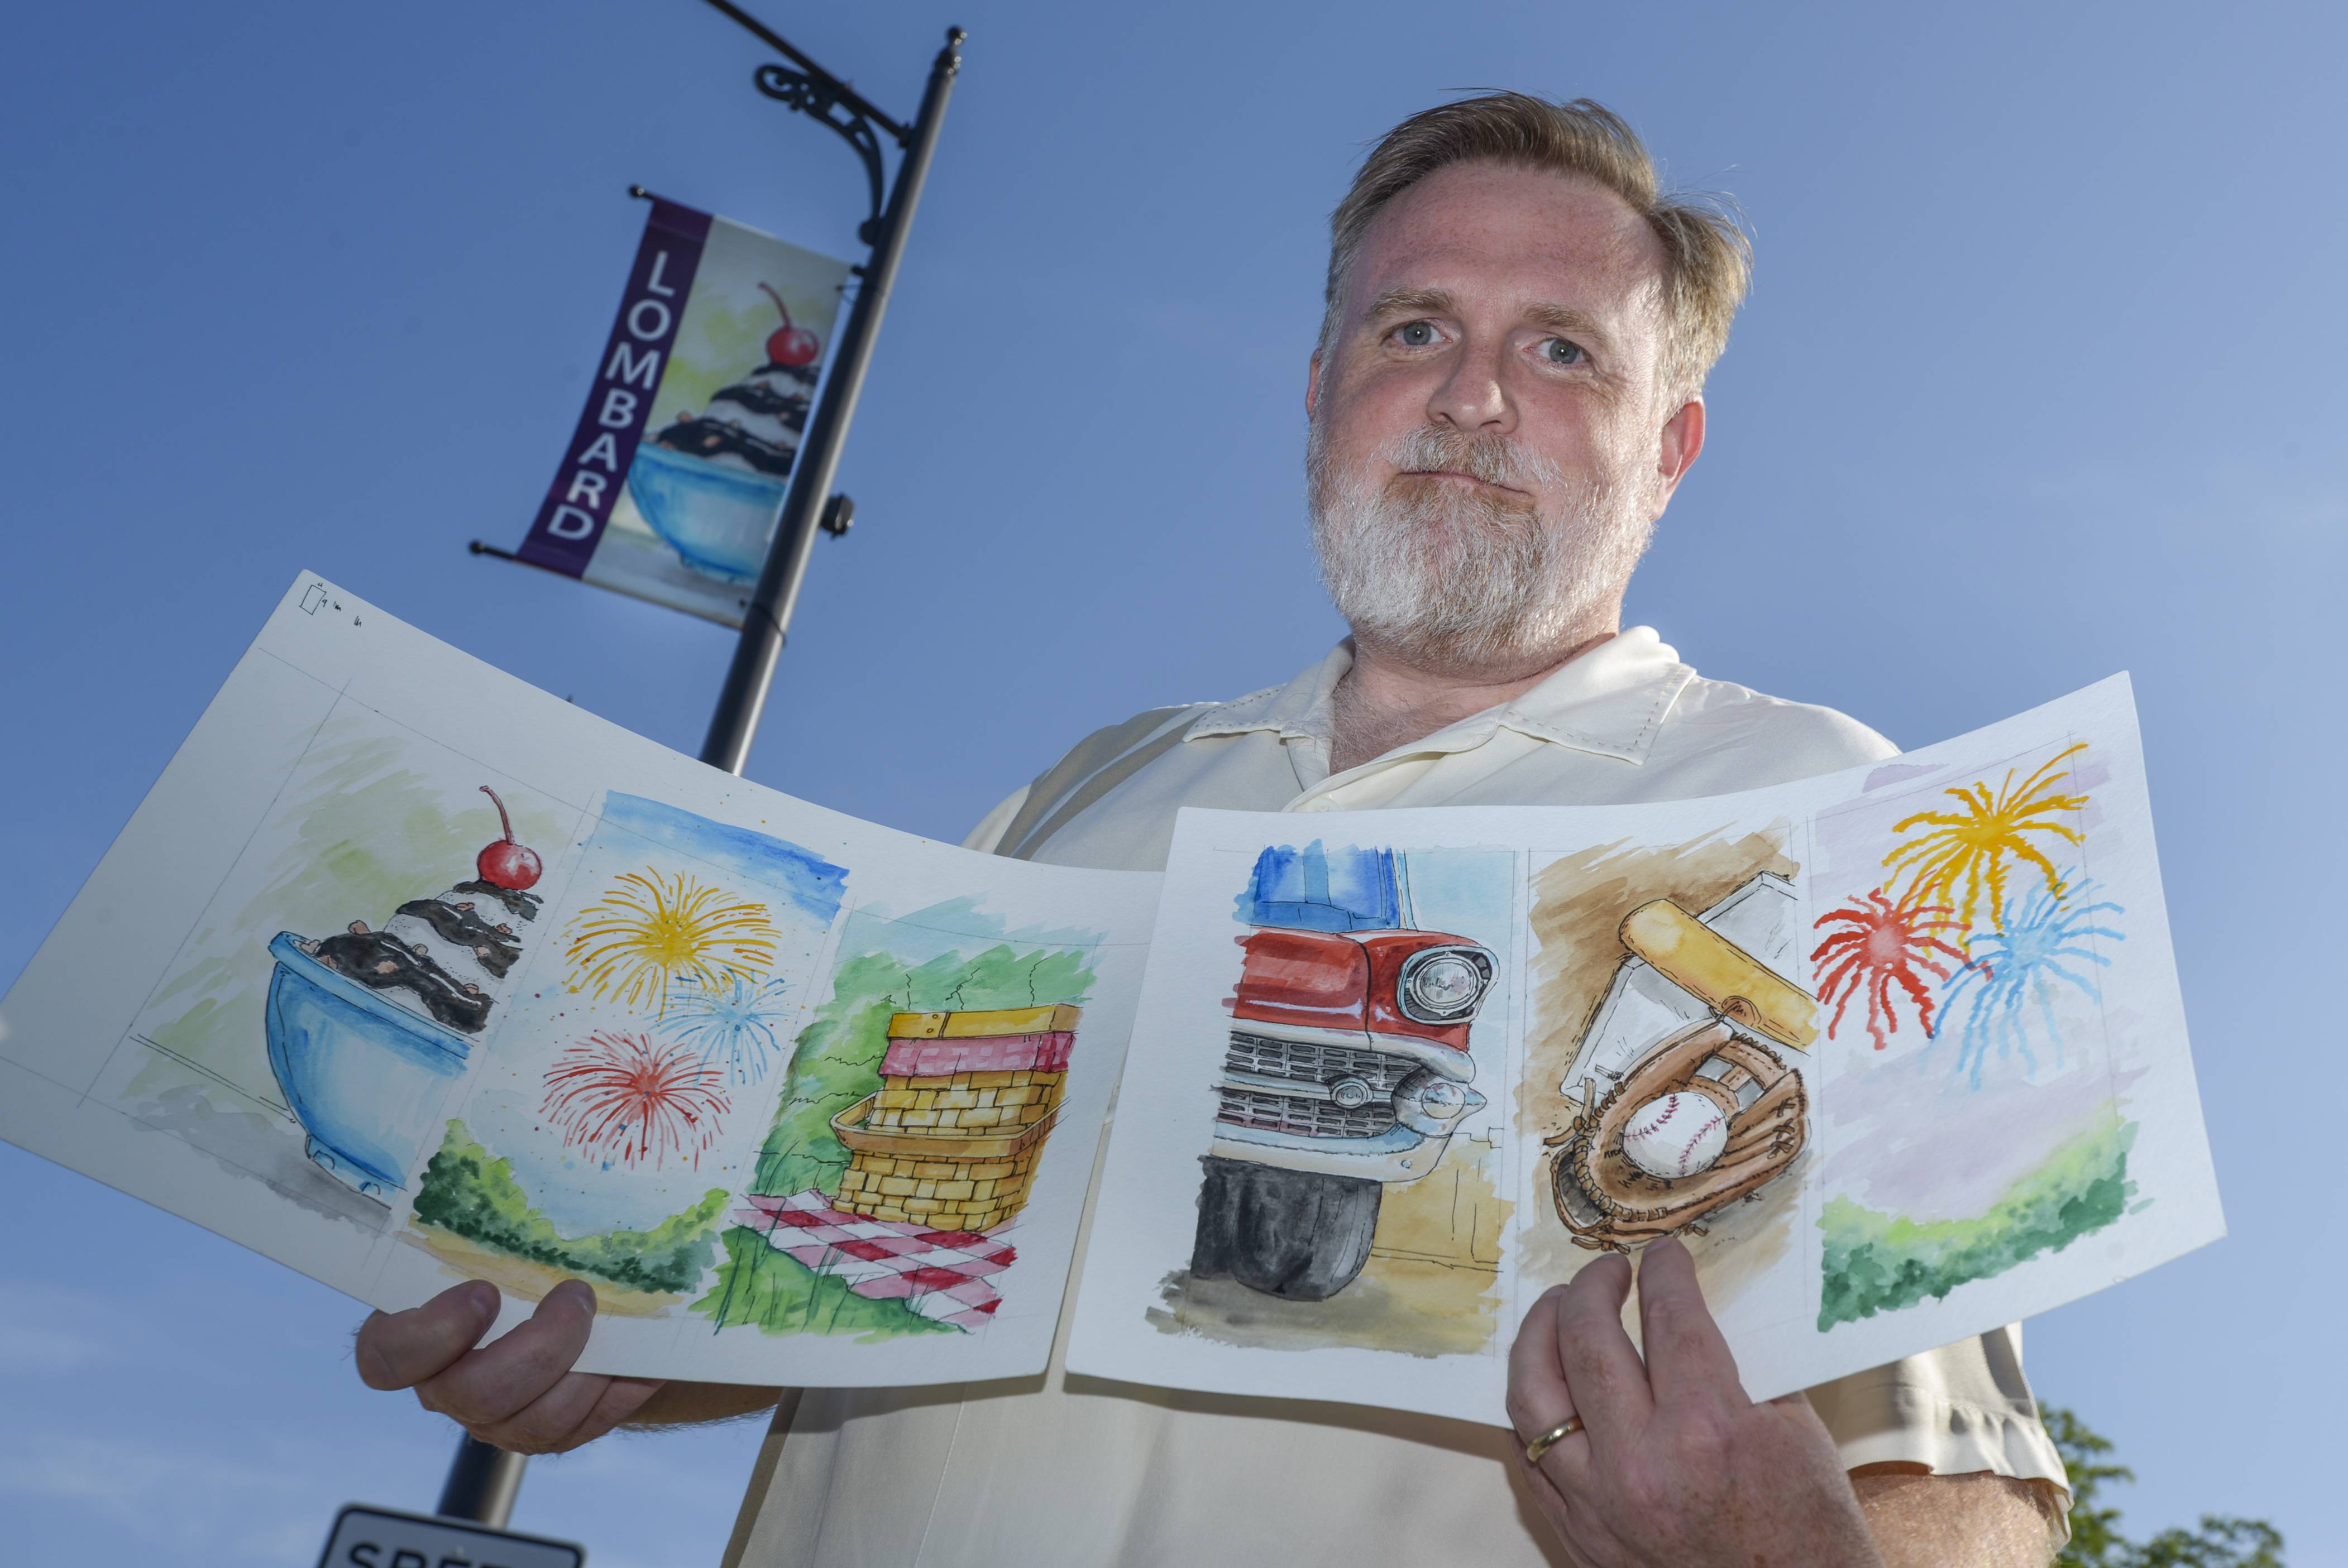 Artist Sean McMenemy of Lombard has created artwork with a summer theme that is displayed on light poles around Lombard.